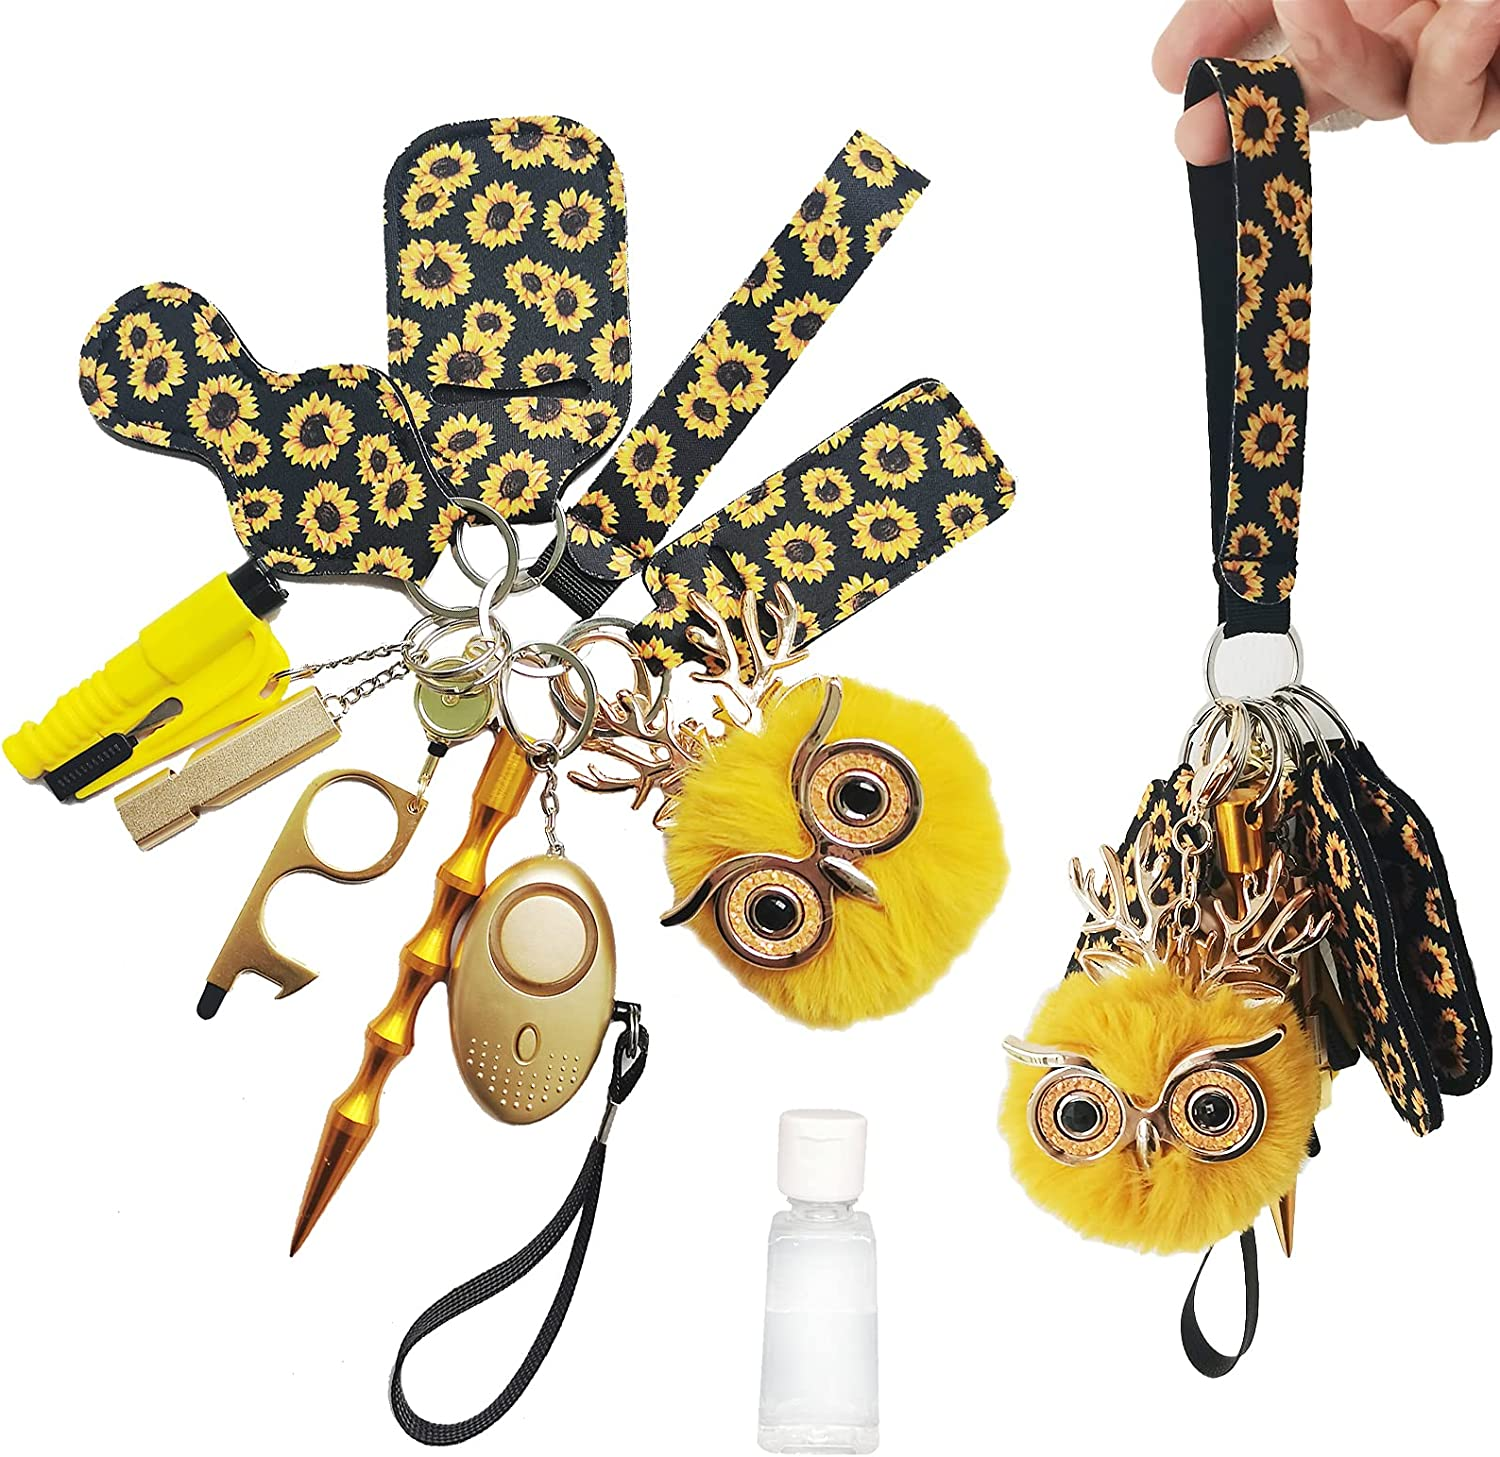 ZUGOULOOK Self Defense Keychain for women,with alarm,window breaker,Upgrade 12 Pcs Self Defense Keychain Set Cute,Gift for Family (flower)